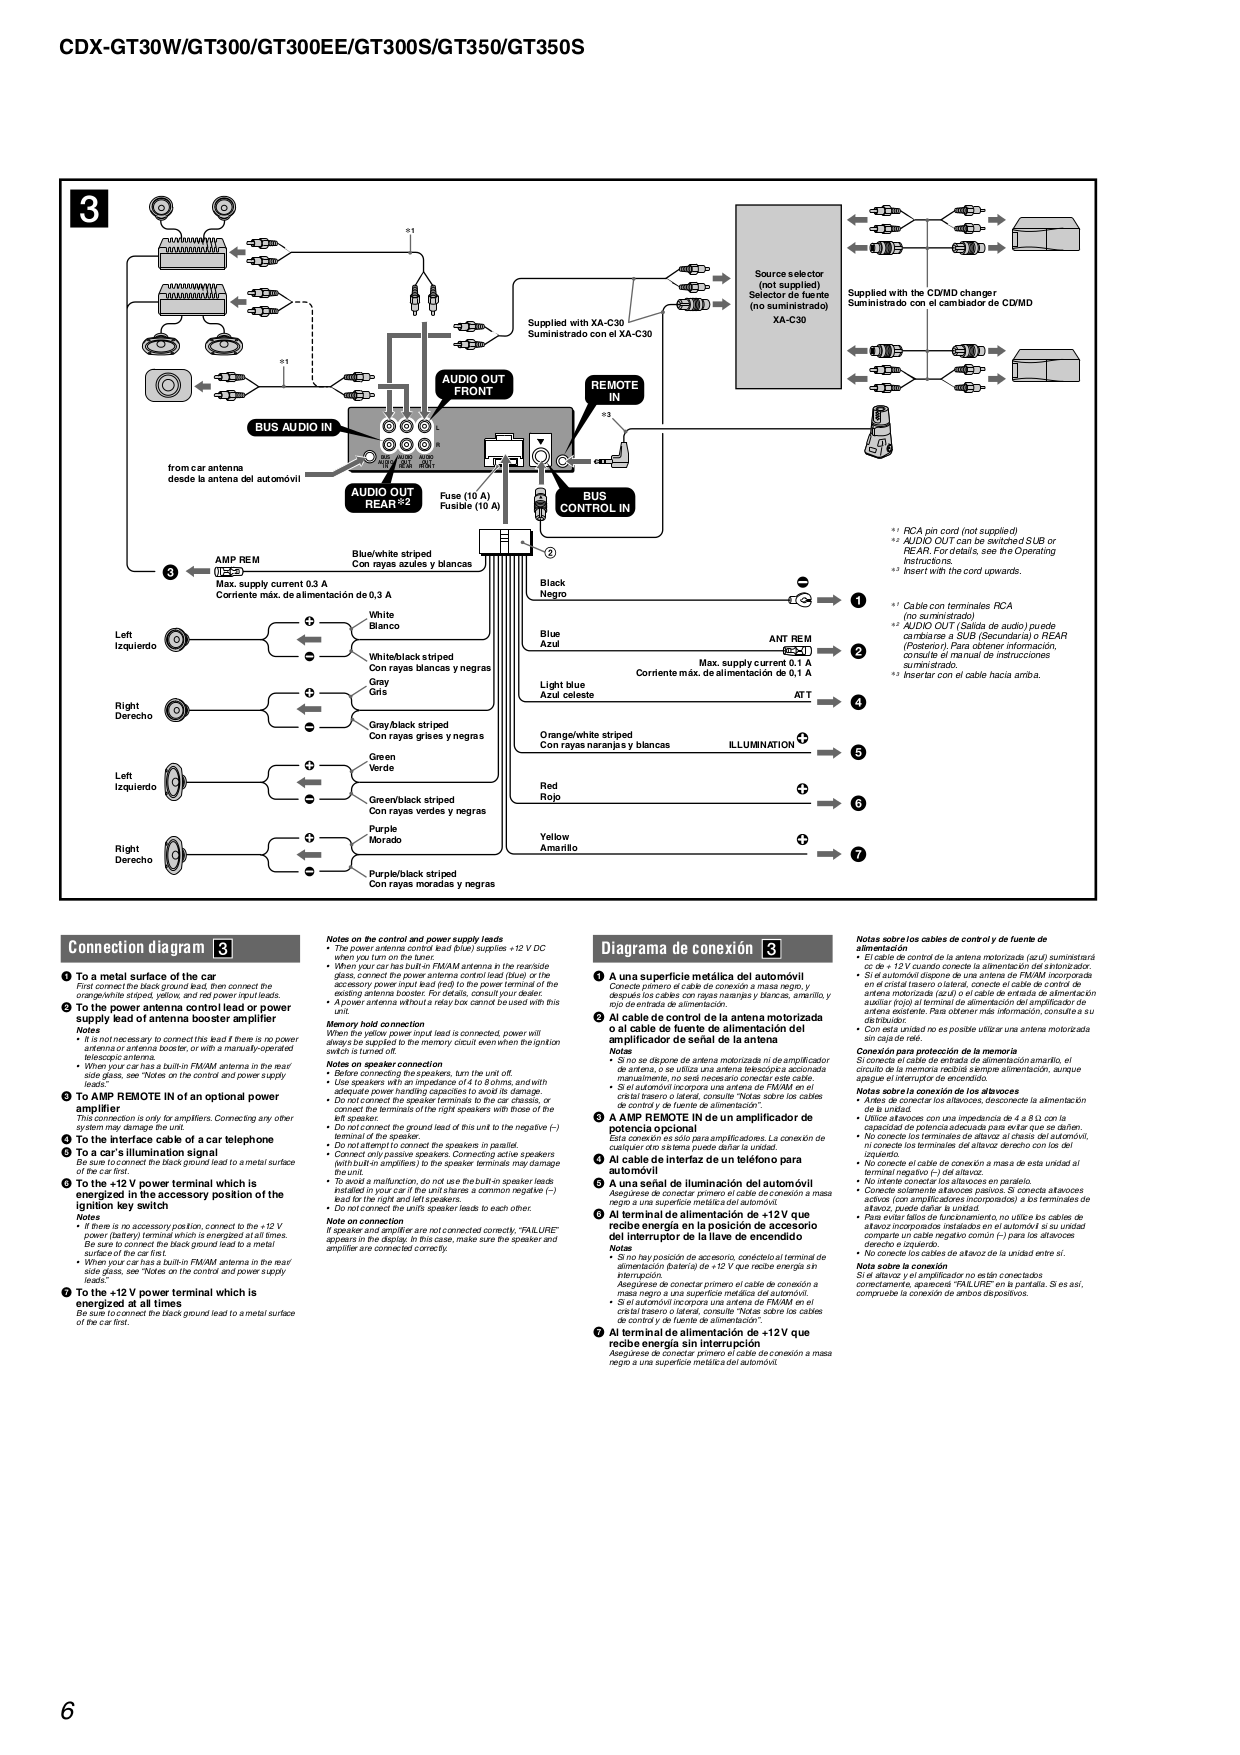 Sony Cdx Gt300 Wiring Diagram Solutions M610 Pdf Manual For Car Receiver